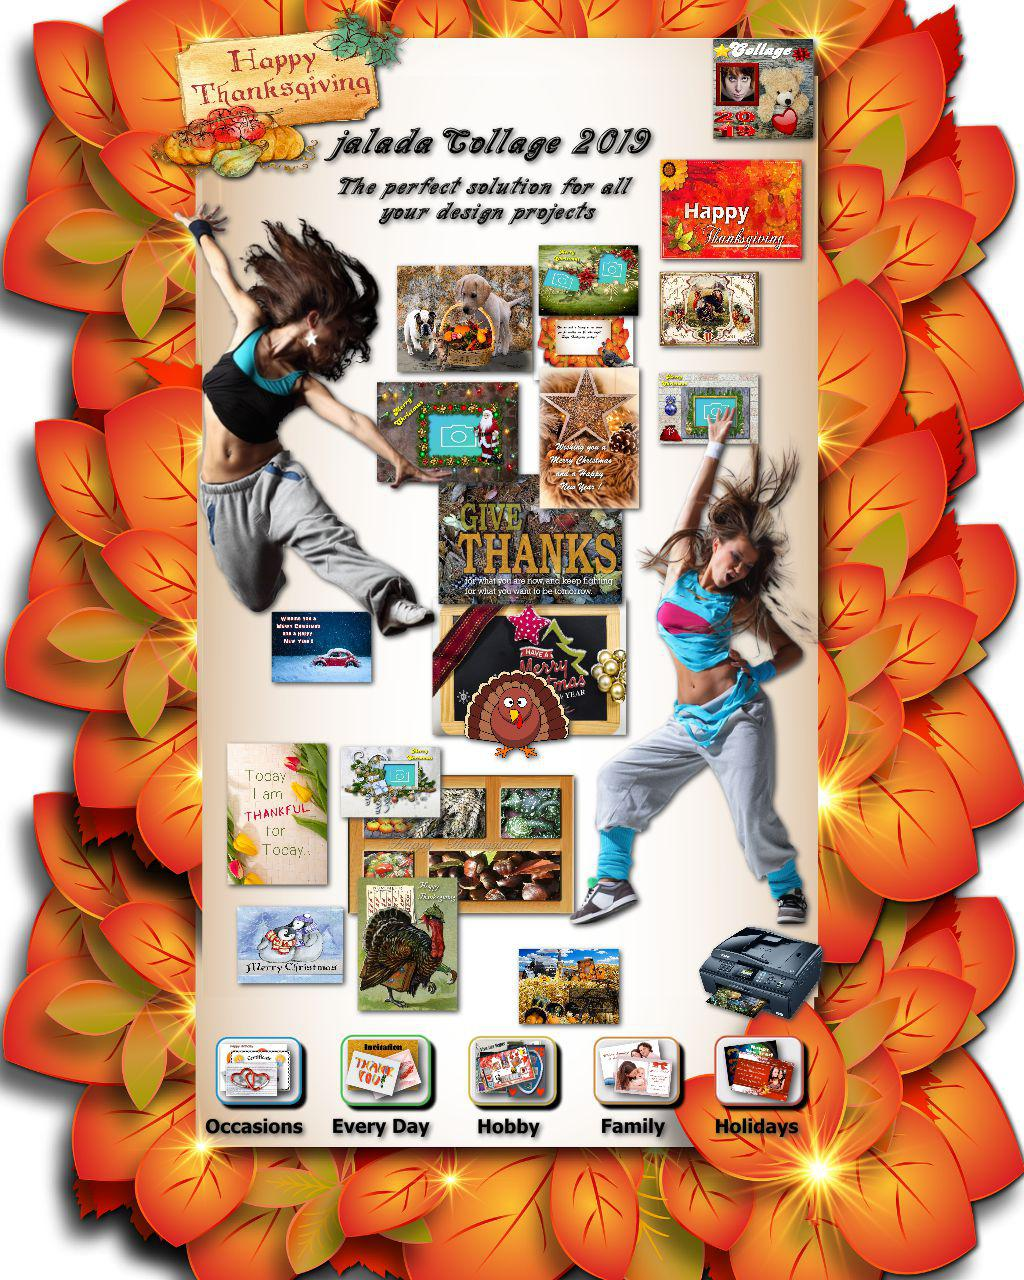 jalada Collage - The perfect App for Thanksgiving